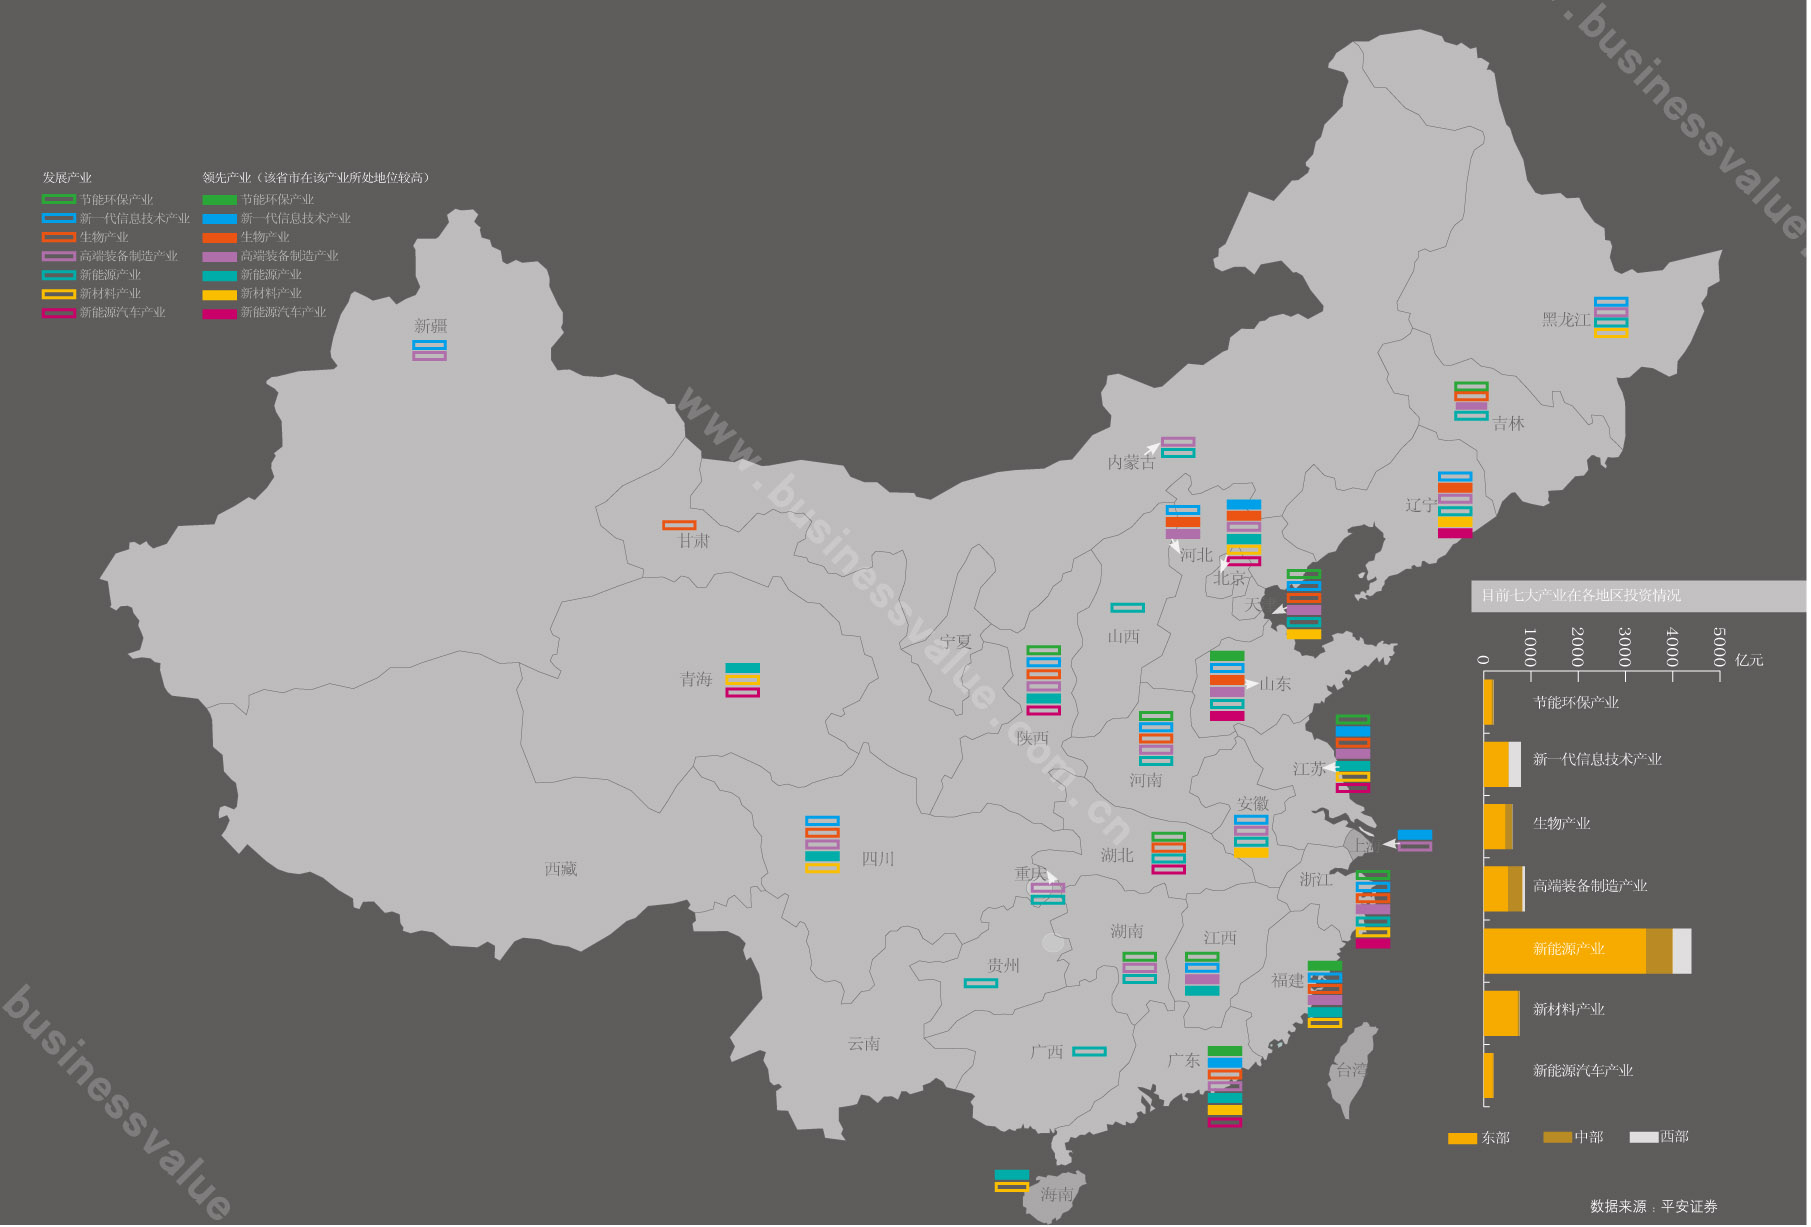 clean technological companies' locations in china